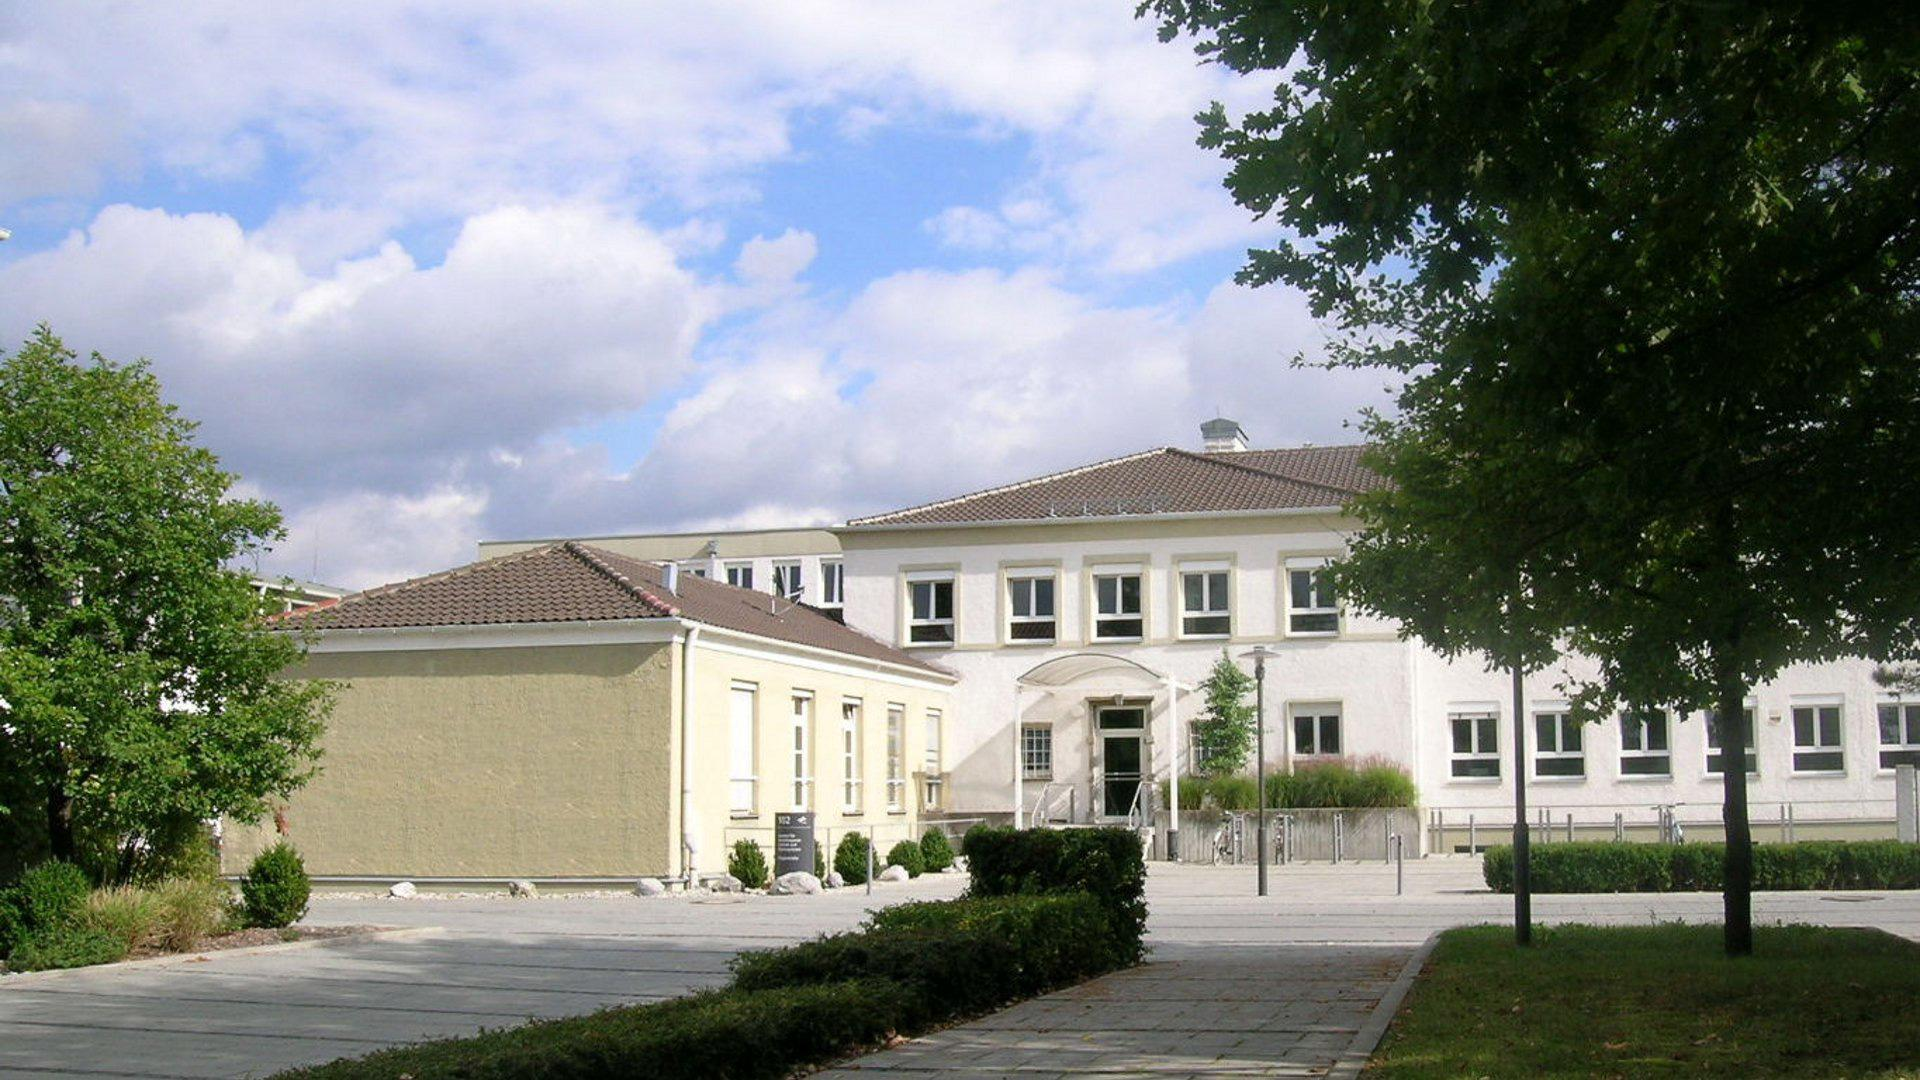 The main building of the Microwaves and Radar Institute at the DLR site at Oberpfaffenhofen